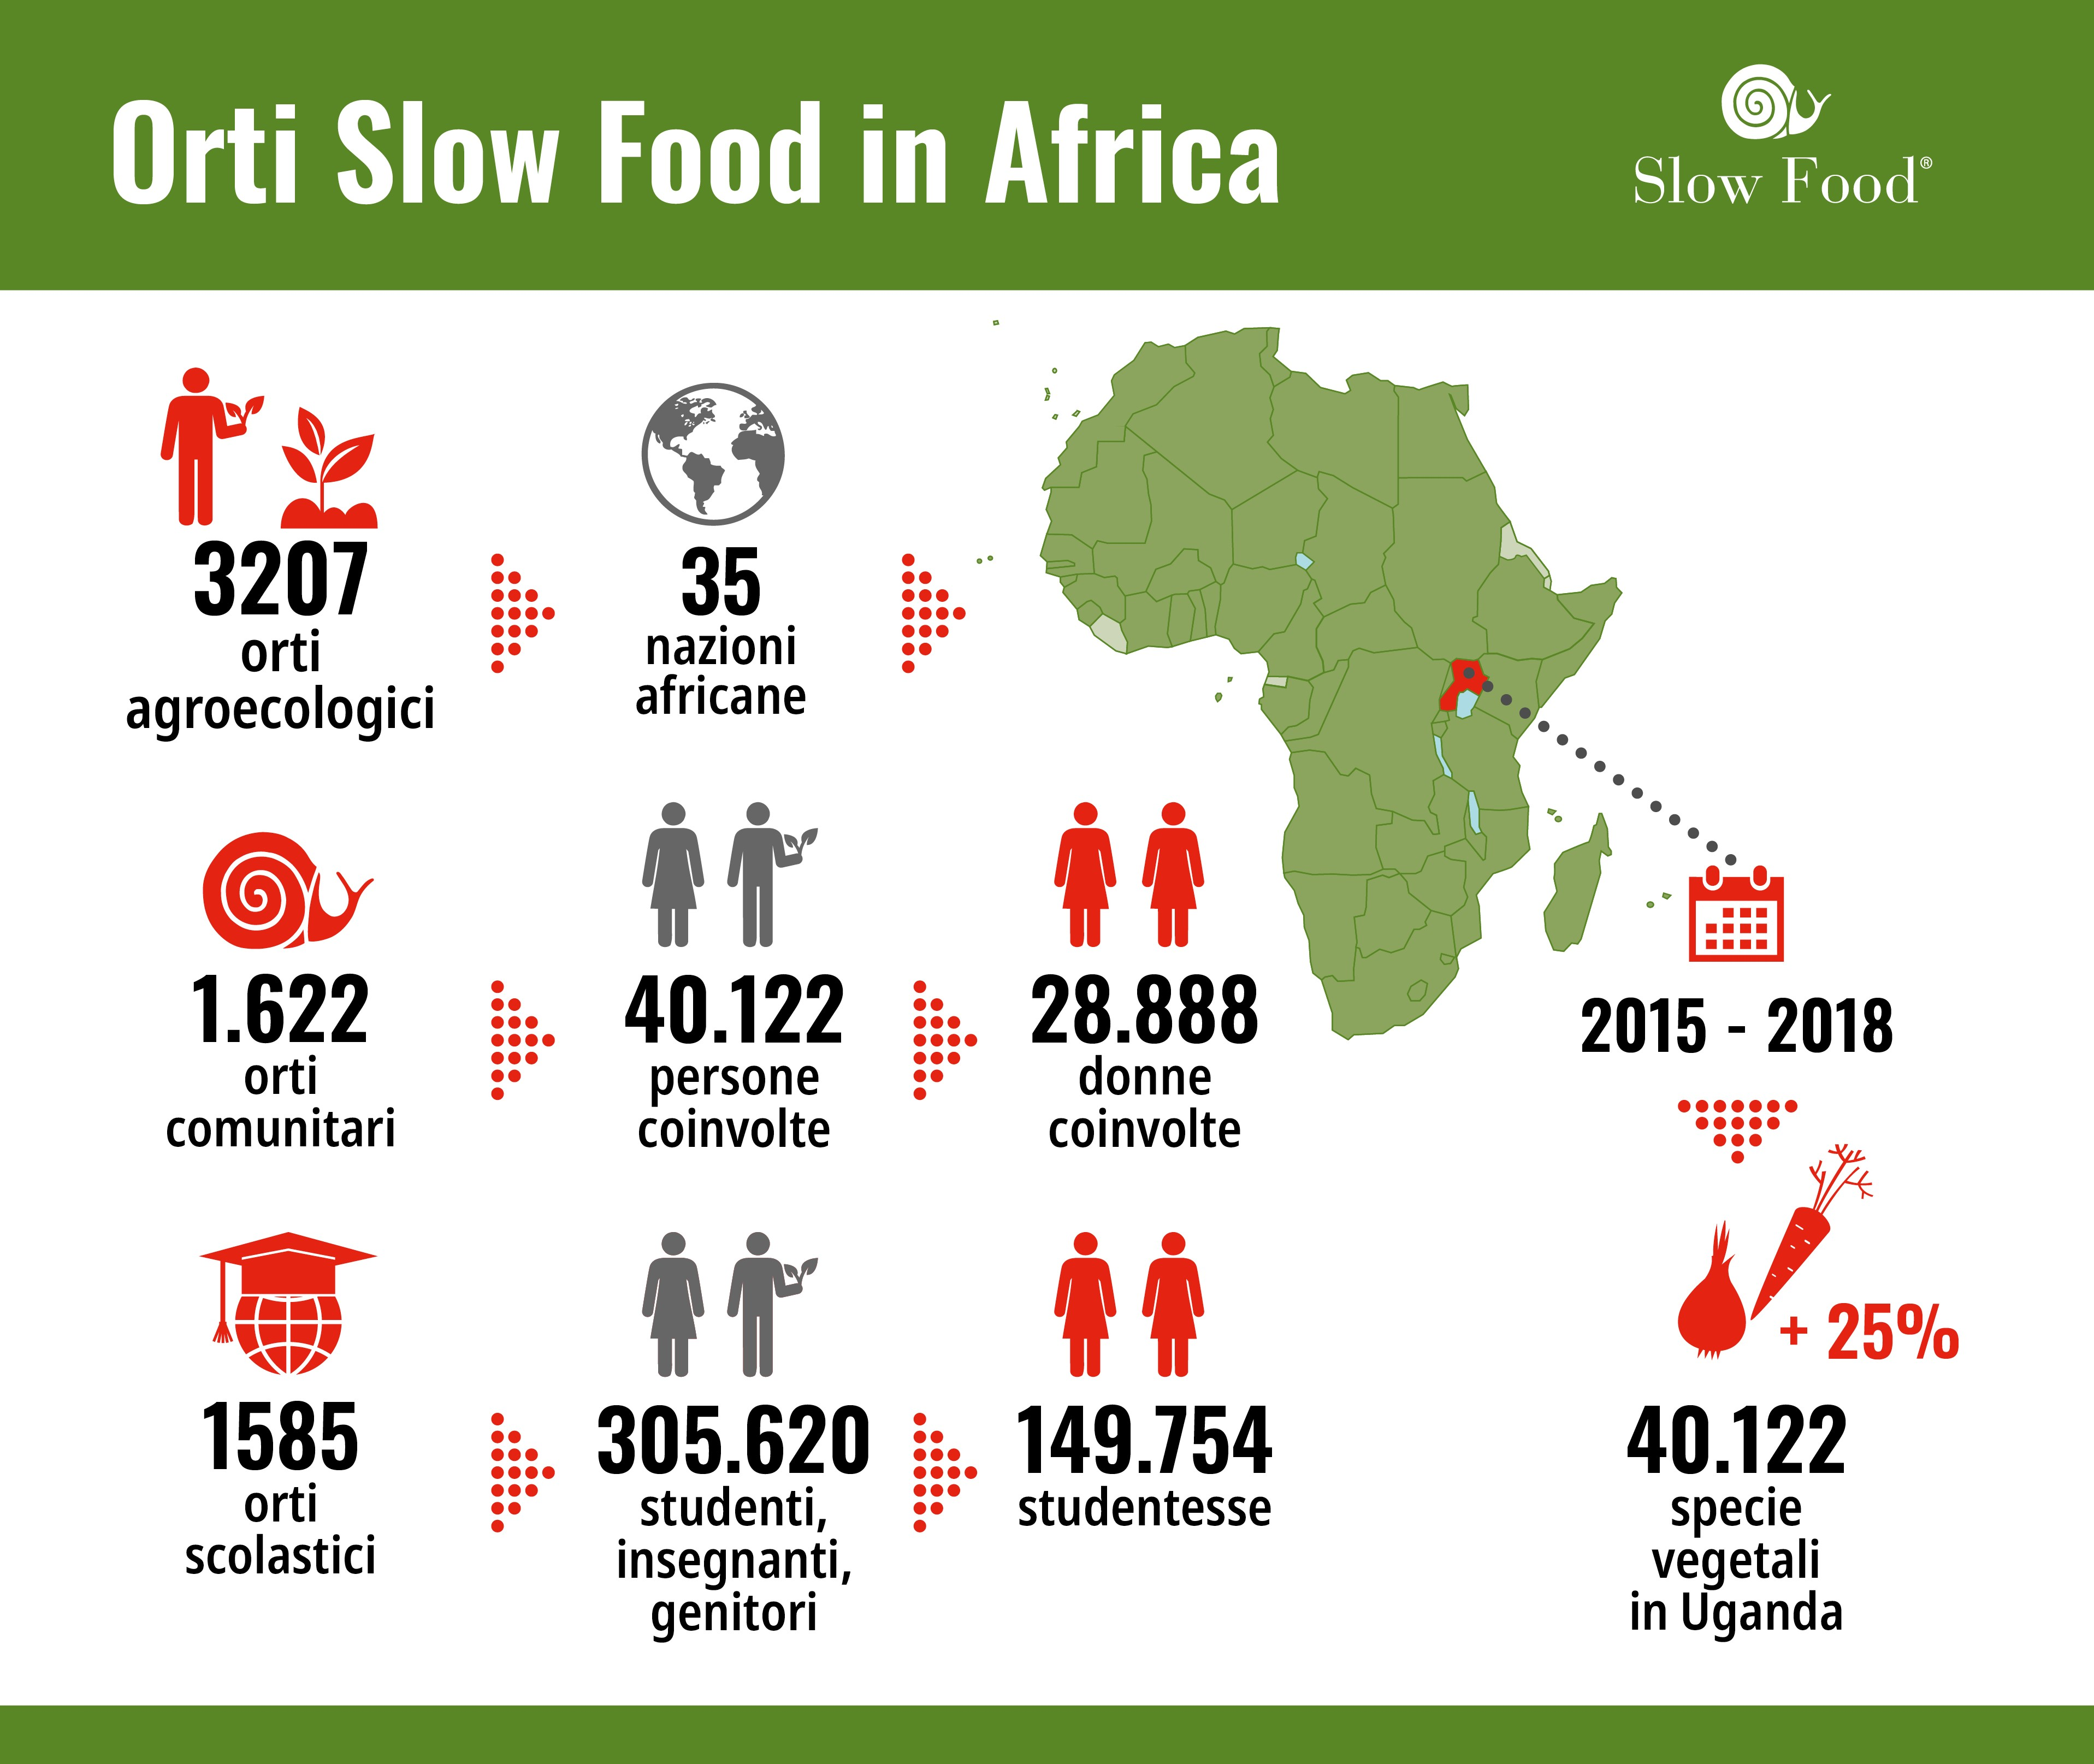 orti slow food in africa